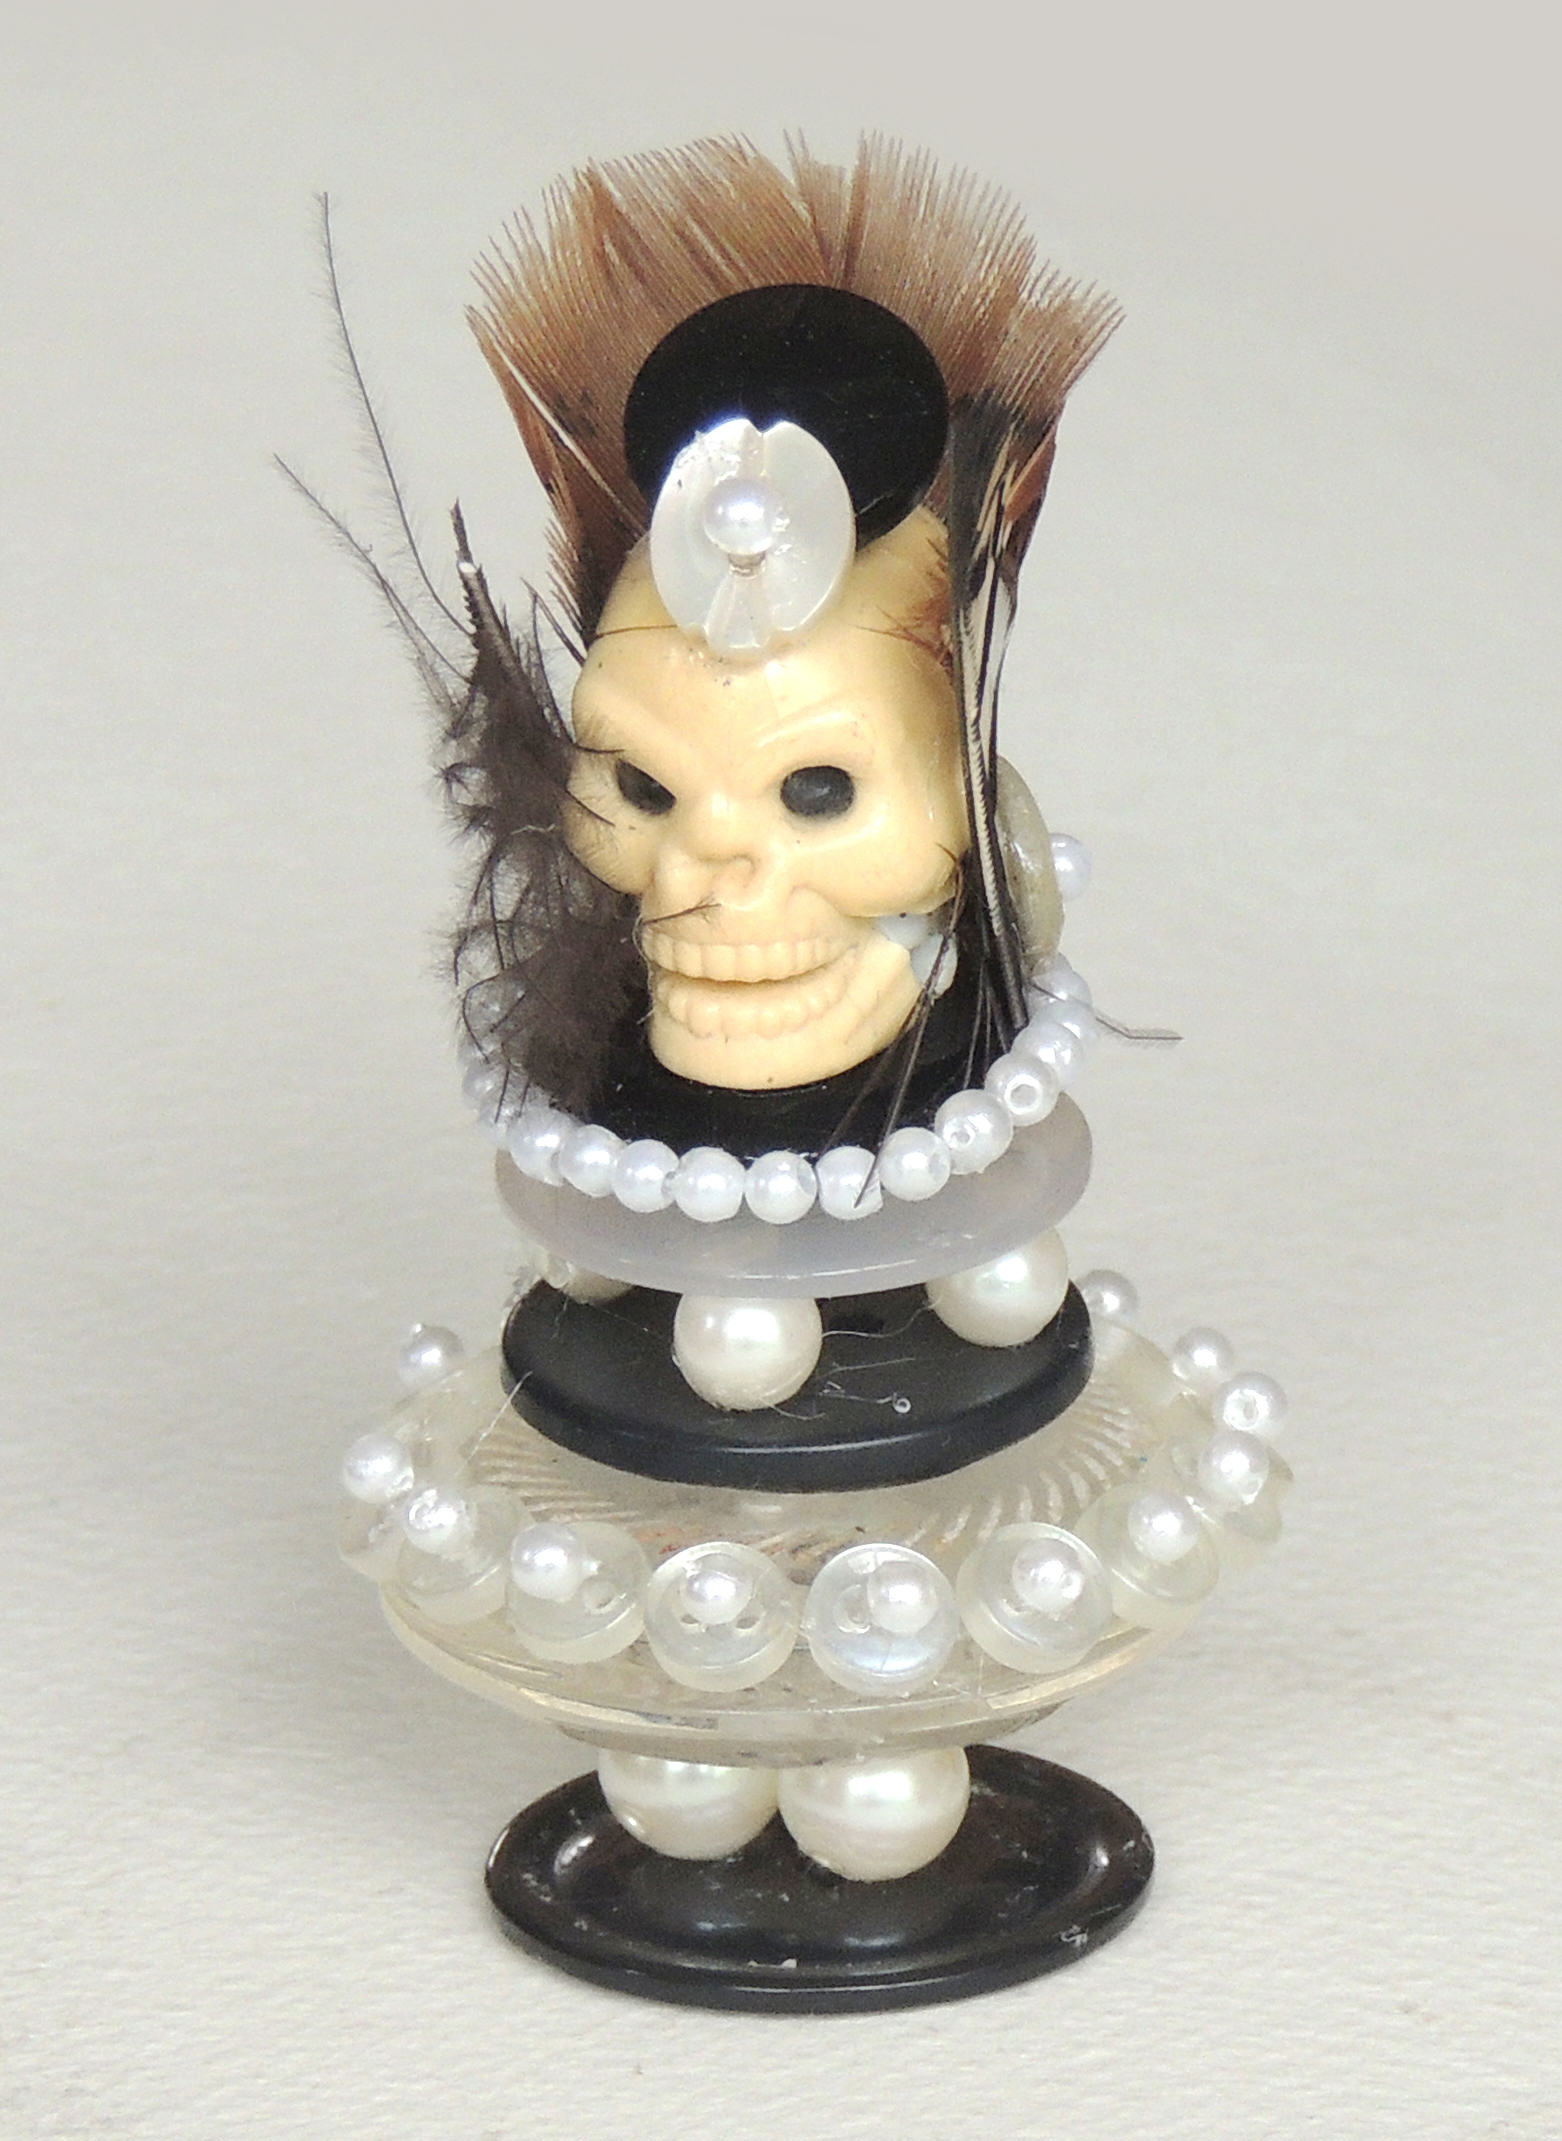 Marianne Rabb Britton | SKULL WITH BEADS | Beads & Found Objects | 3 x 1.75 x D 1.75"